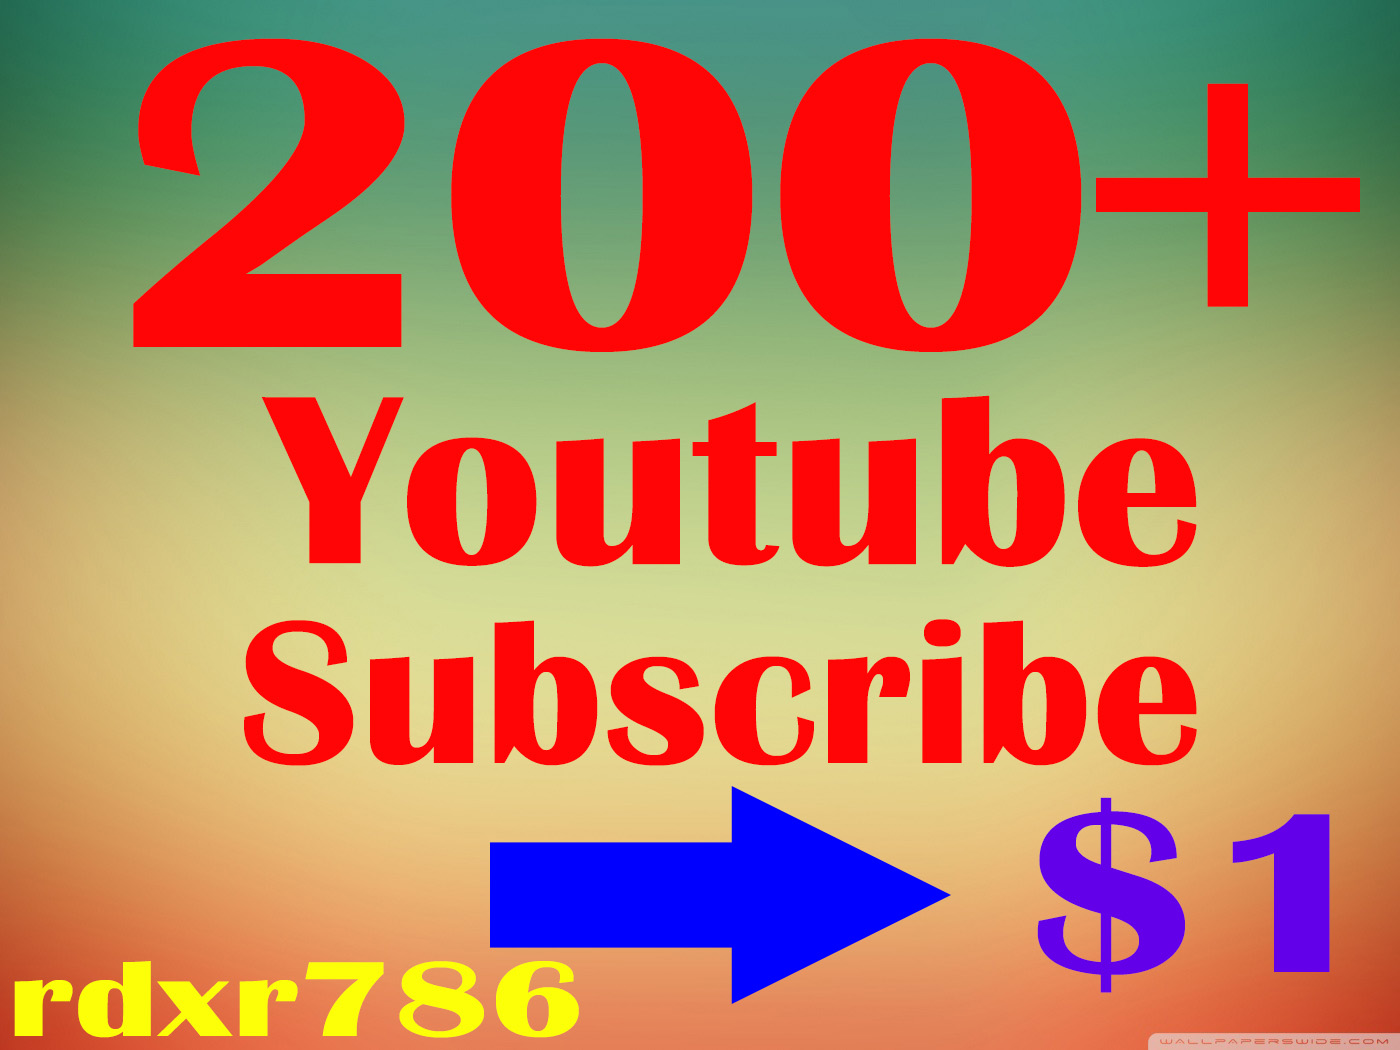 Add lifetime 200 you Tube  Subs-cribe high quality non-drop, refill guaranteed very fast 12-24 hours